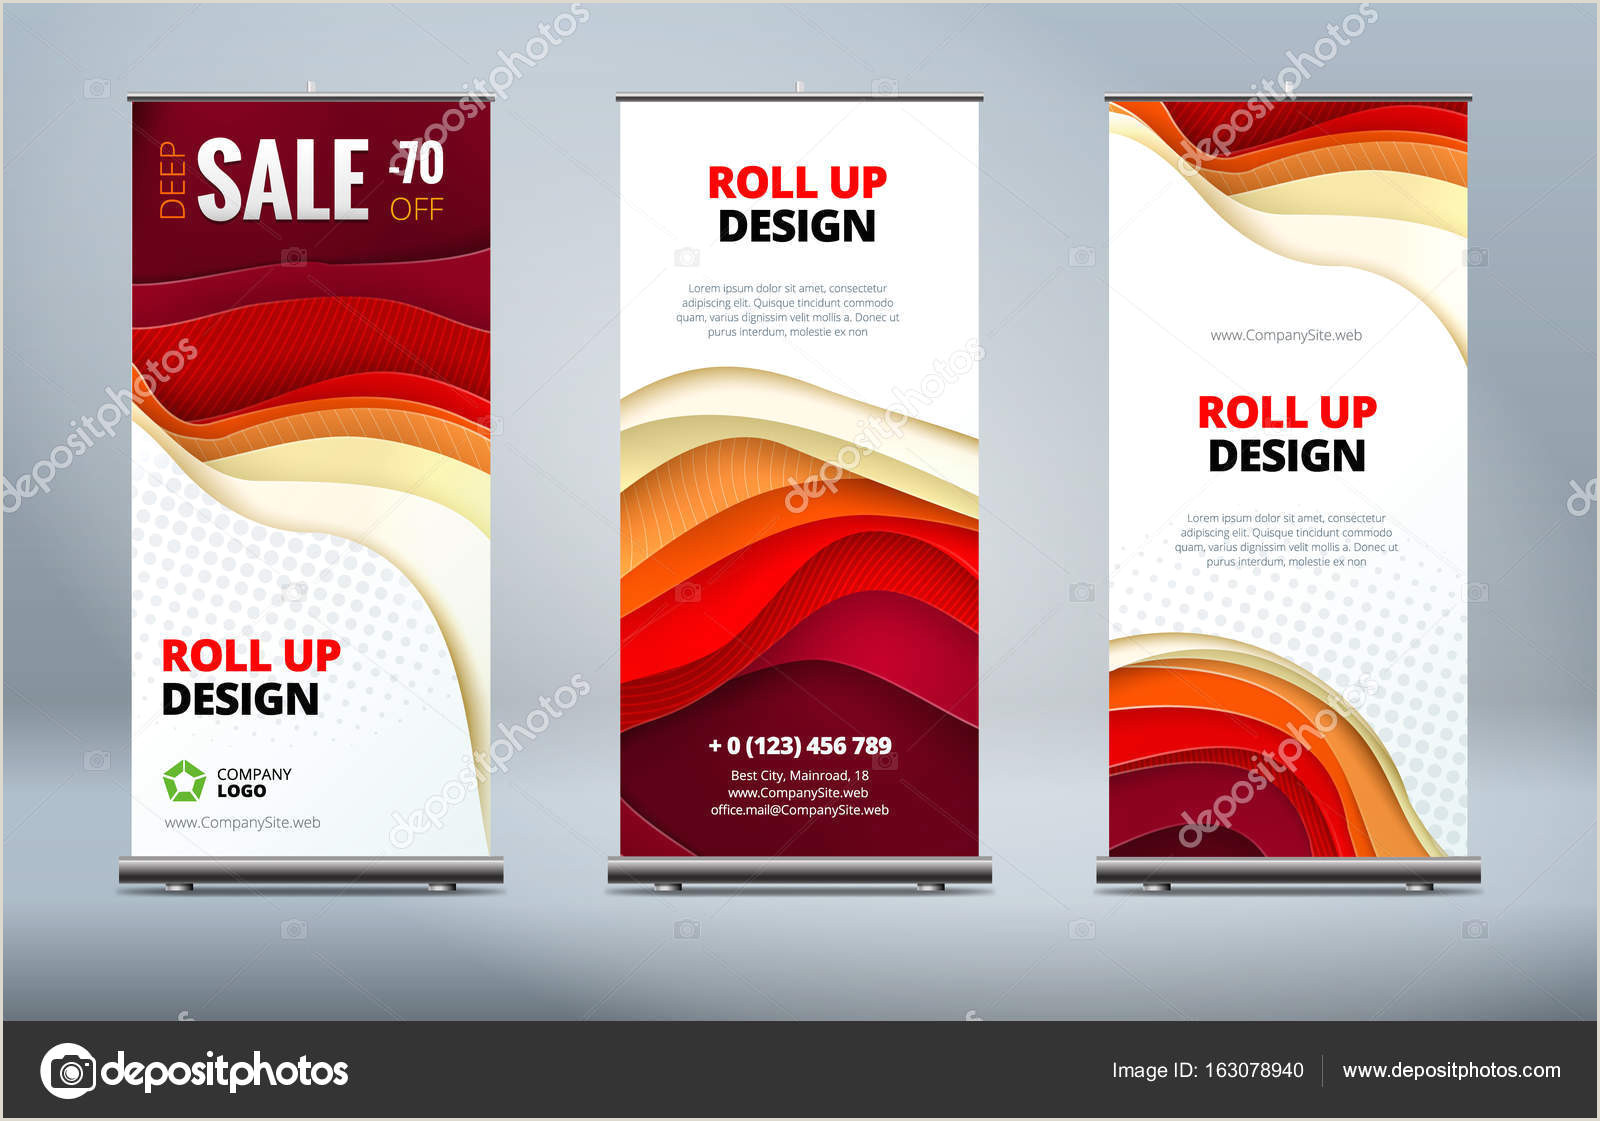 Banner Stand Design Business Roll Up Banner Stand